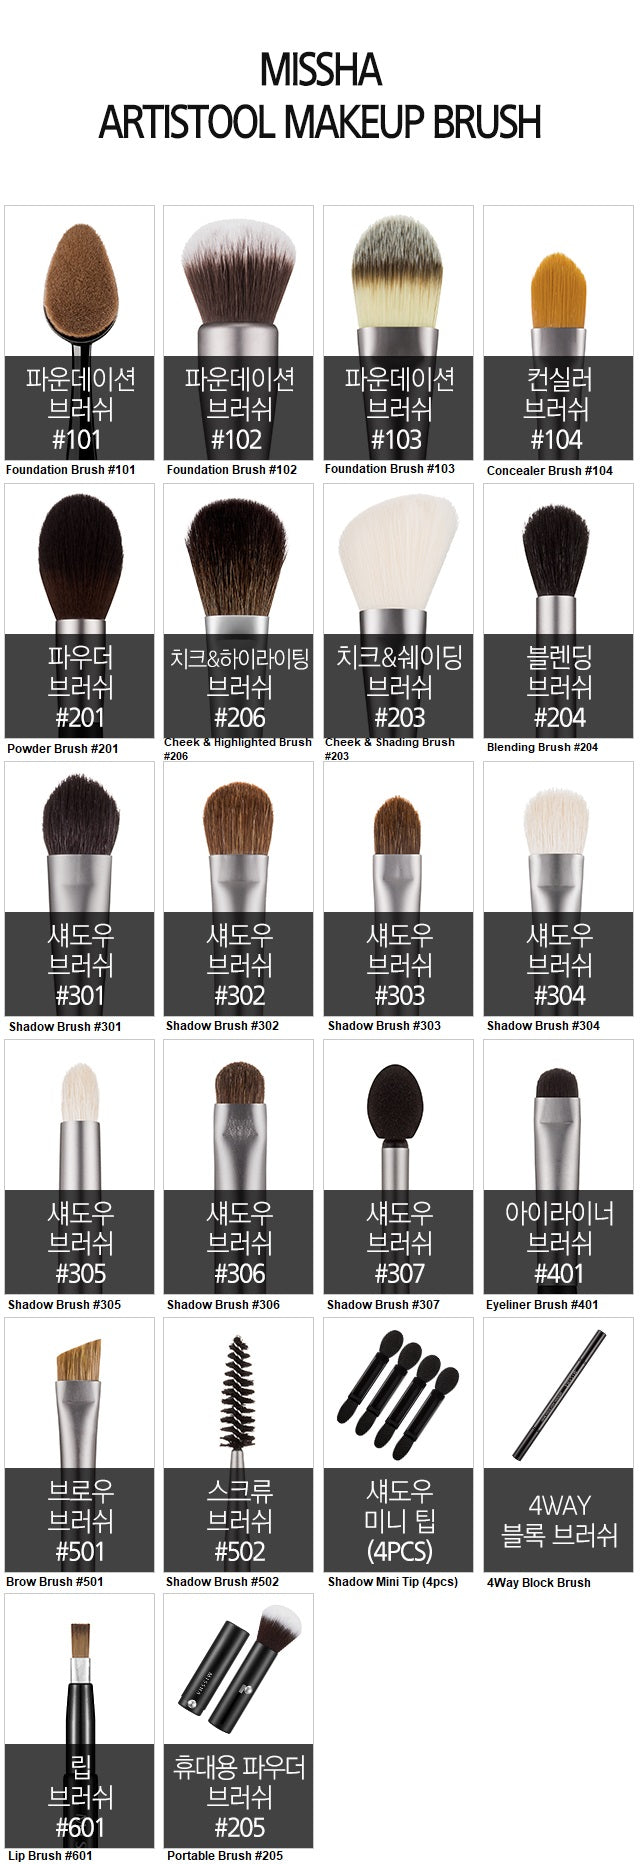 MISSHA Artistool Makeup Brush Range